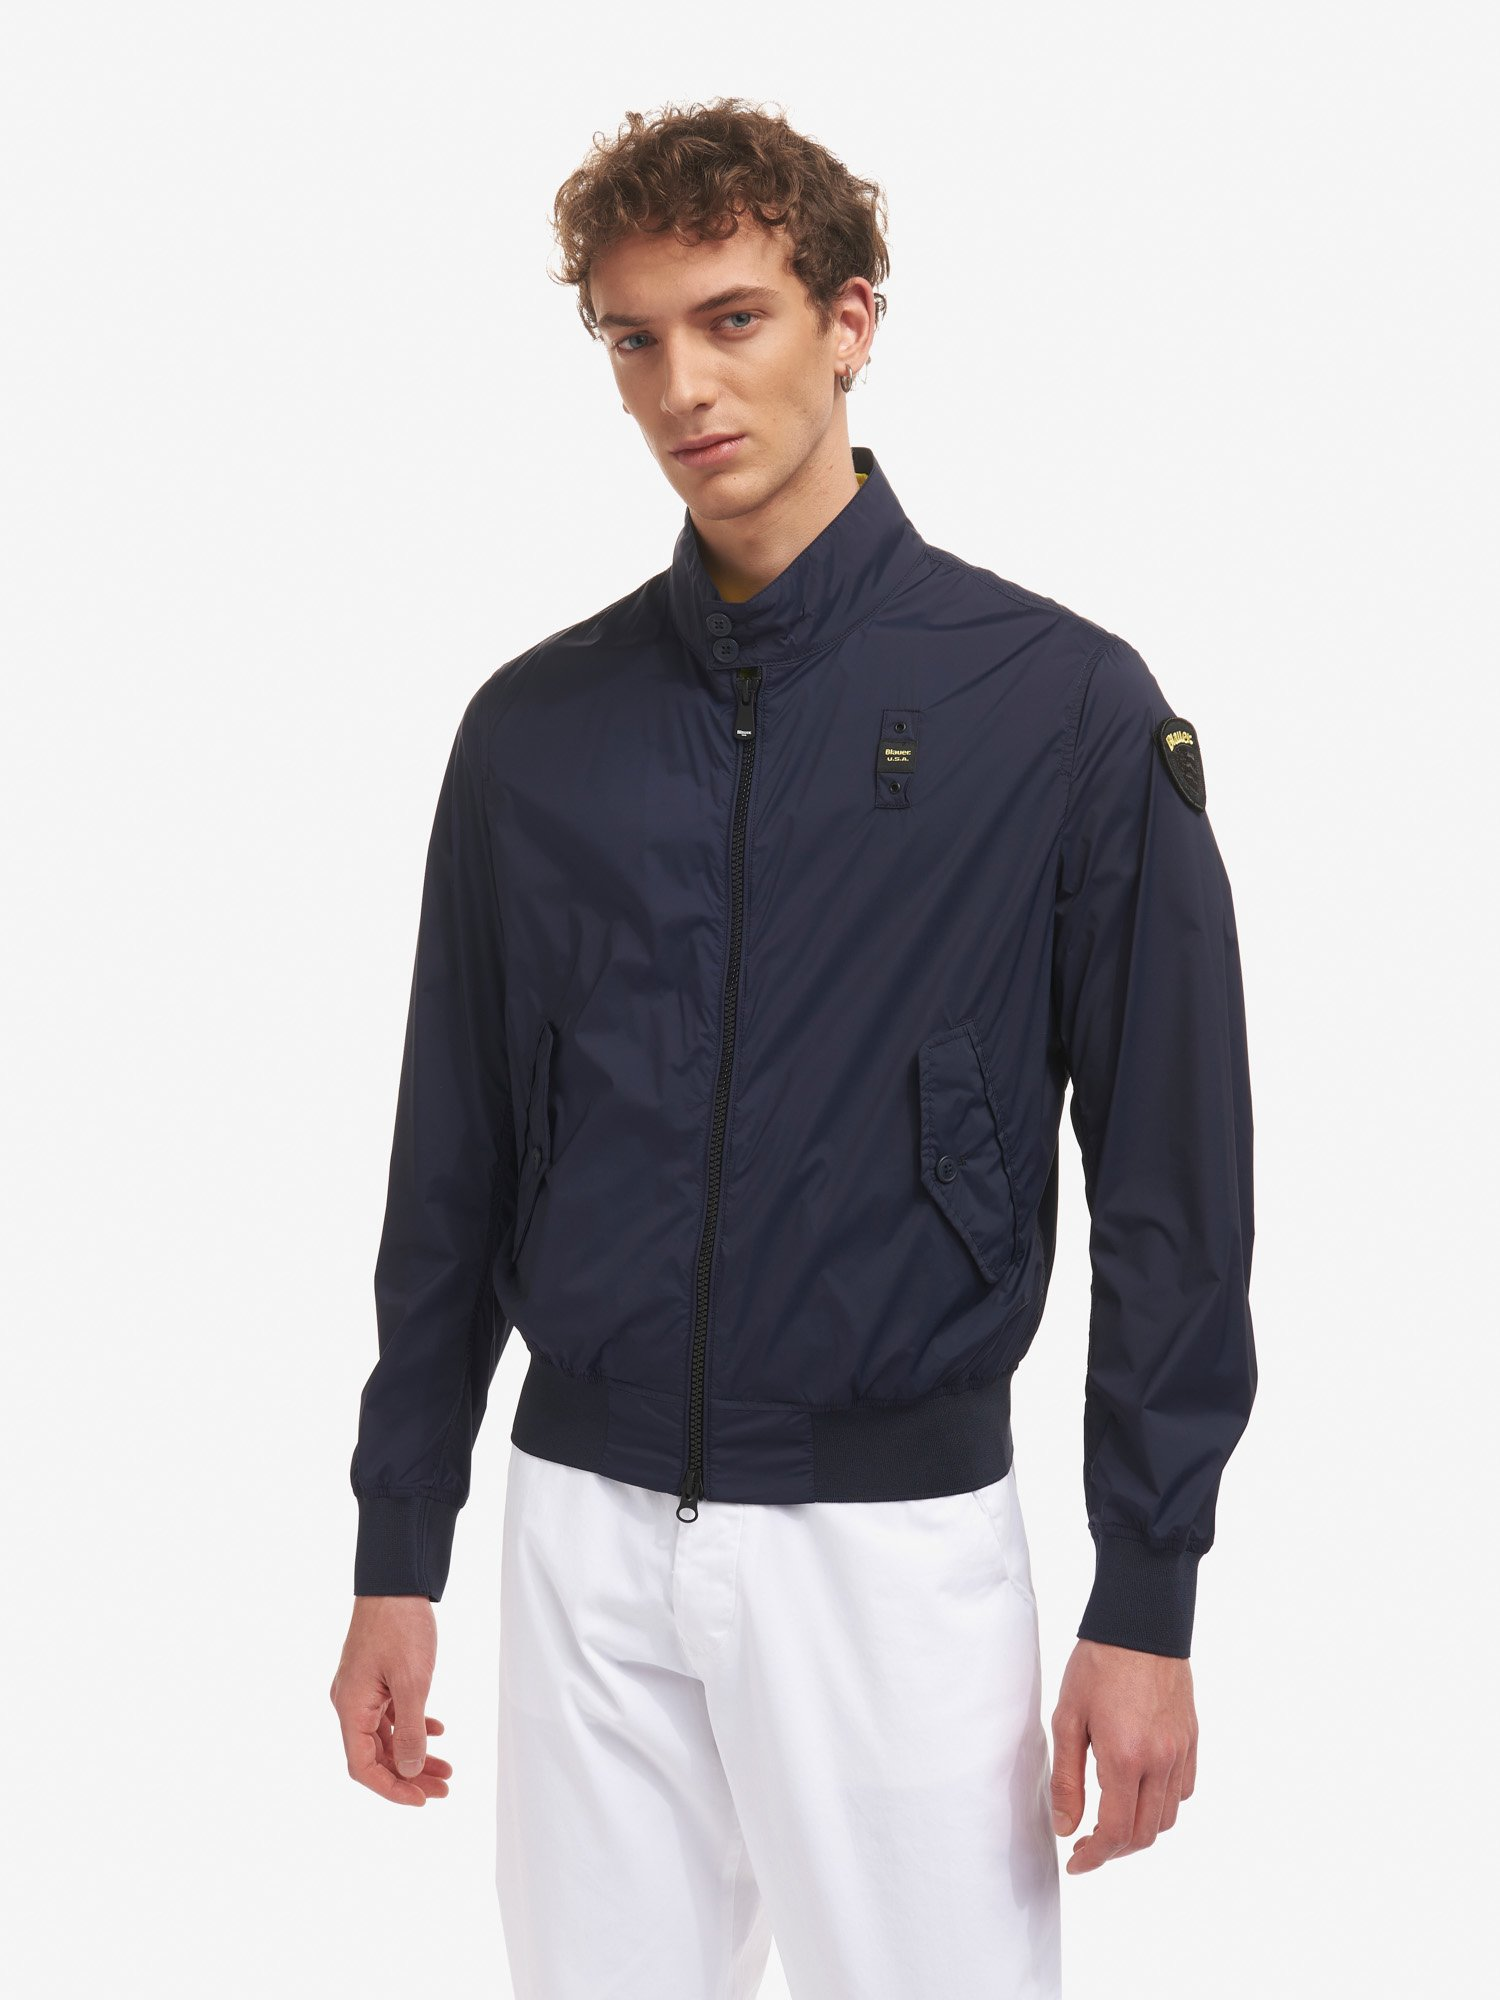 LEE STRETCH UNLINED MILITARY-STYLE JACKET - Blauer